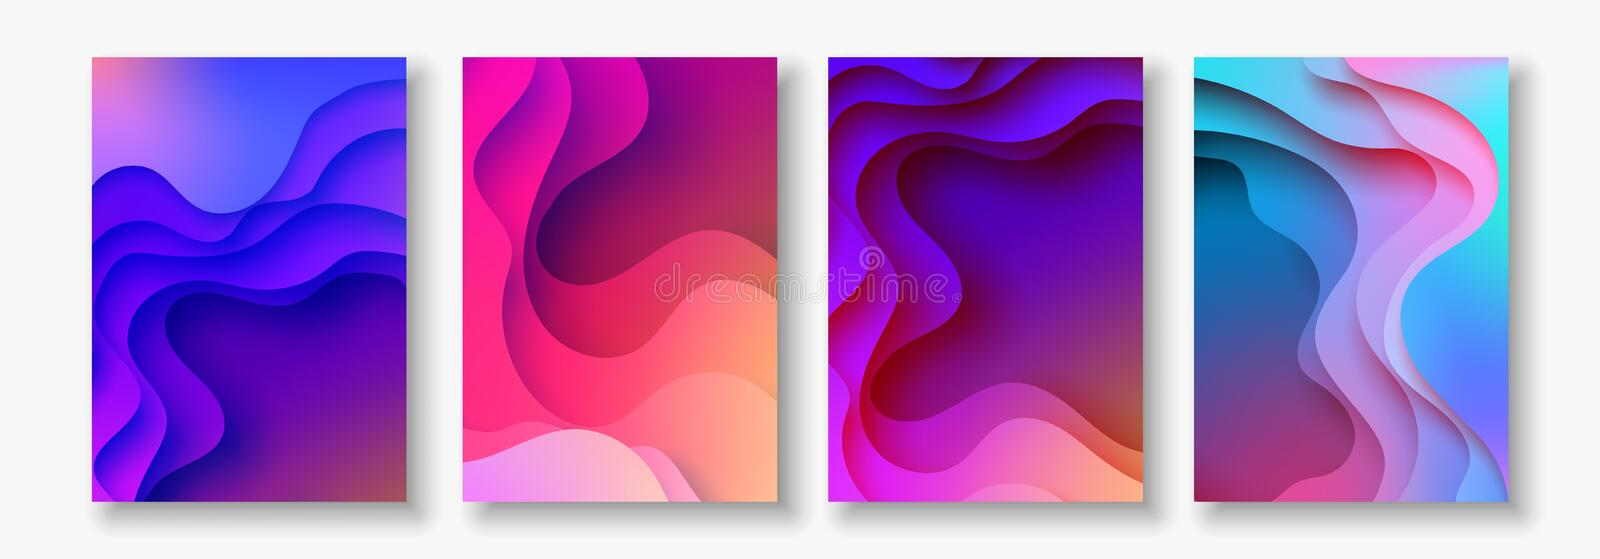 A4 abstract color 3d paper art illustration set. Contrast colors. Vector design layout for banners, presentations, flyer vector illustration